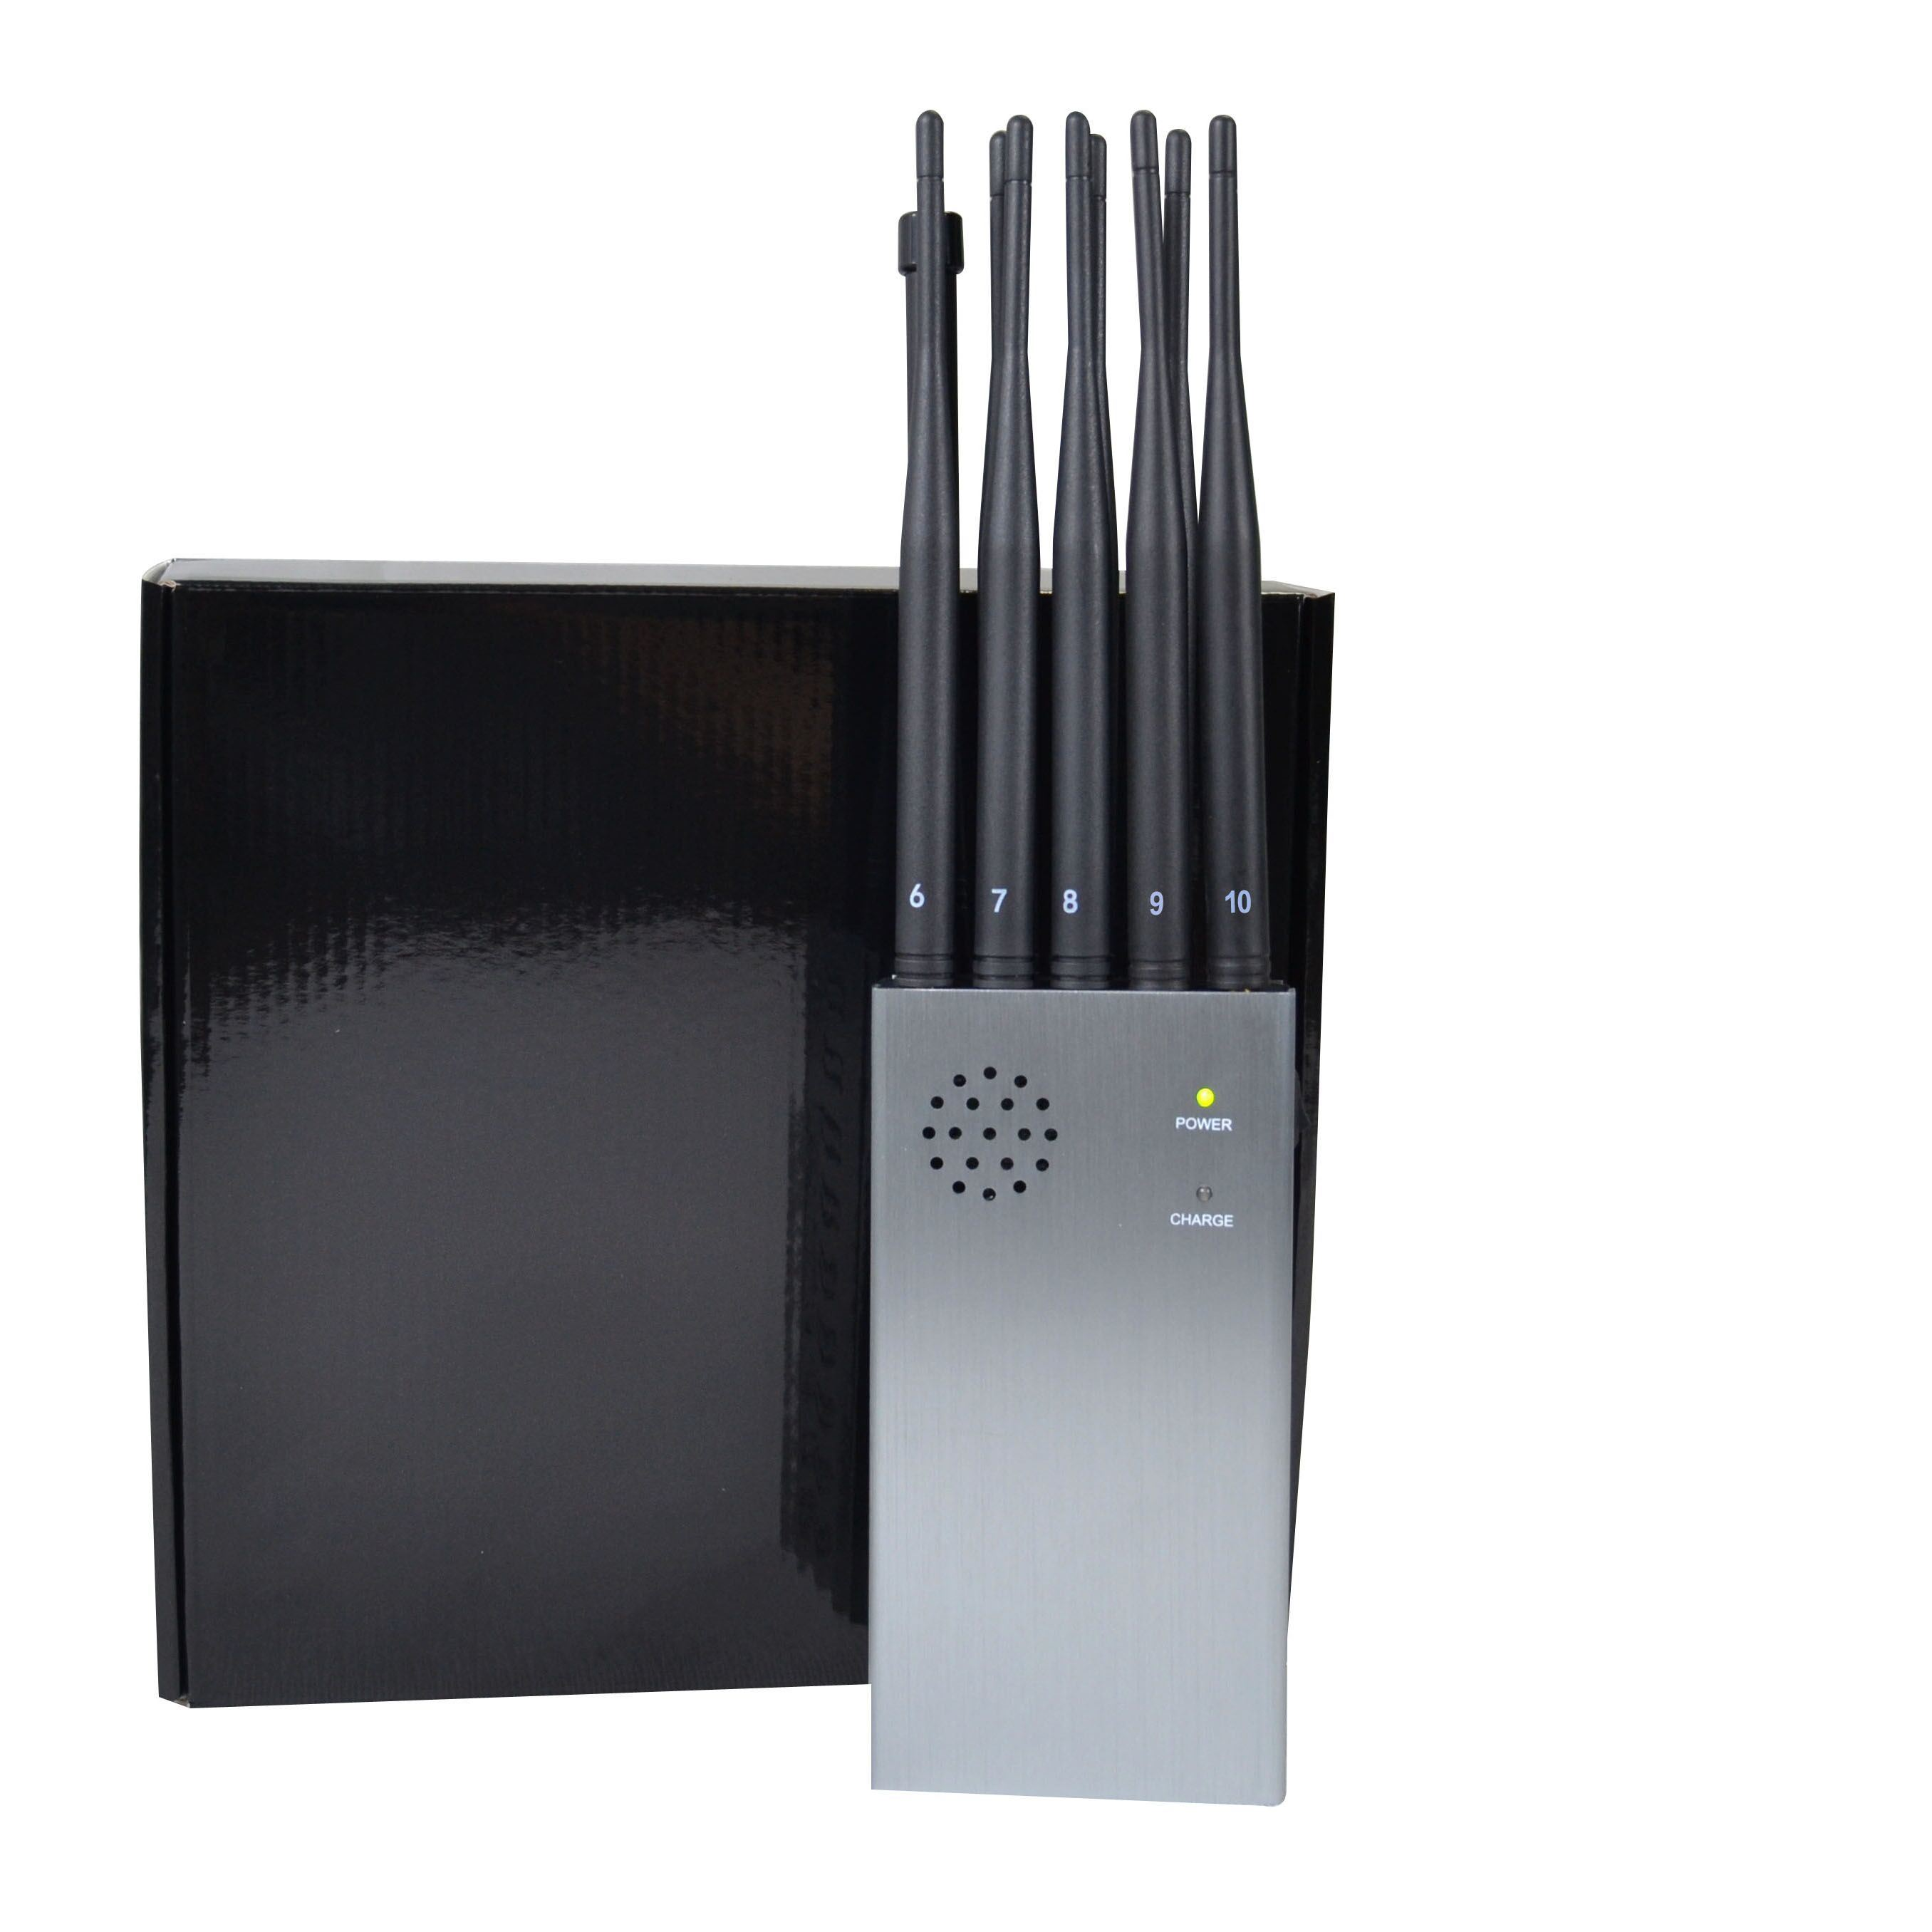 wireless signal jammer device - China High Power up to 8000mA Battery Portable Jammer for Military Using Including Lojack, 3G 4G 2g 5g Remote Control GPS Signals - China 8000mA Battery Jammer, Large Volume Power Signal Blocker